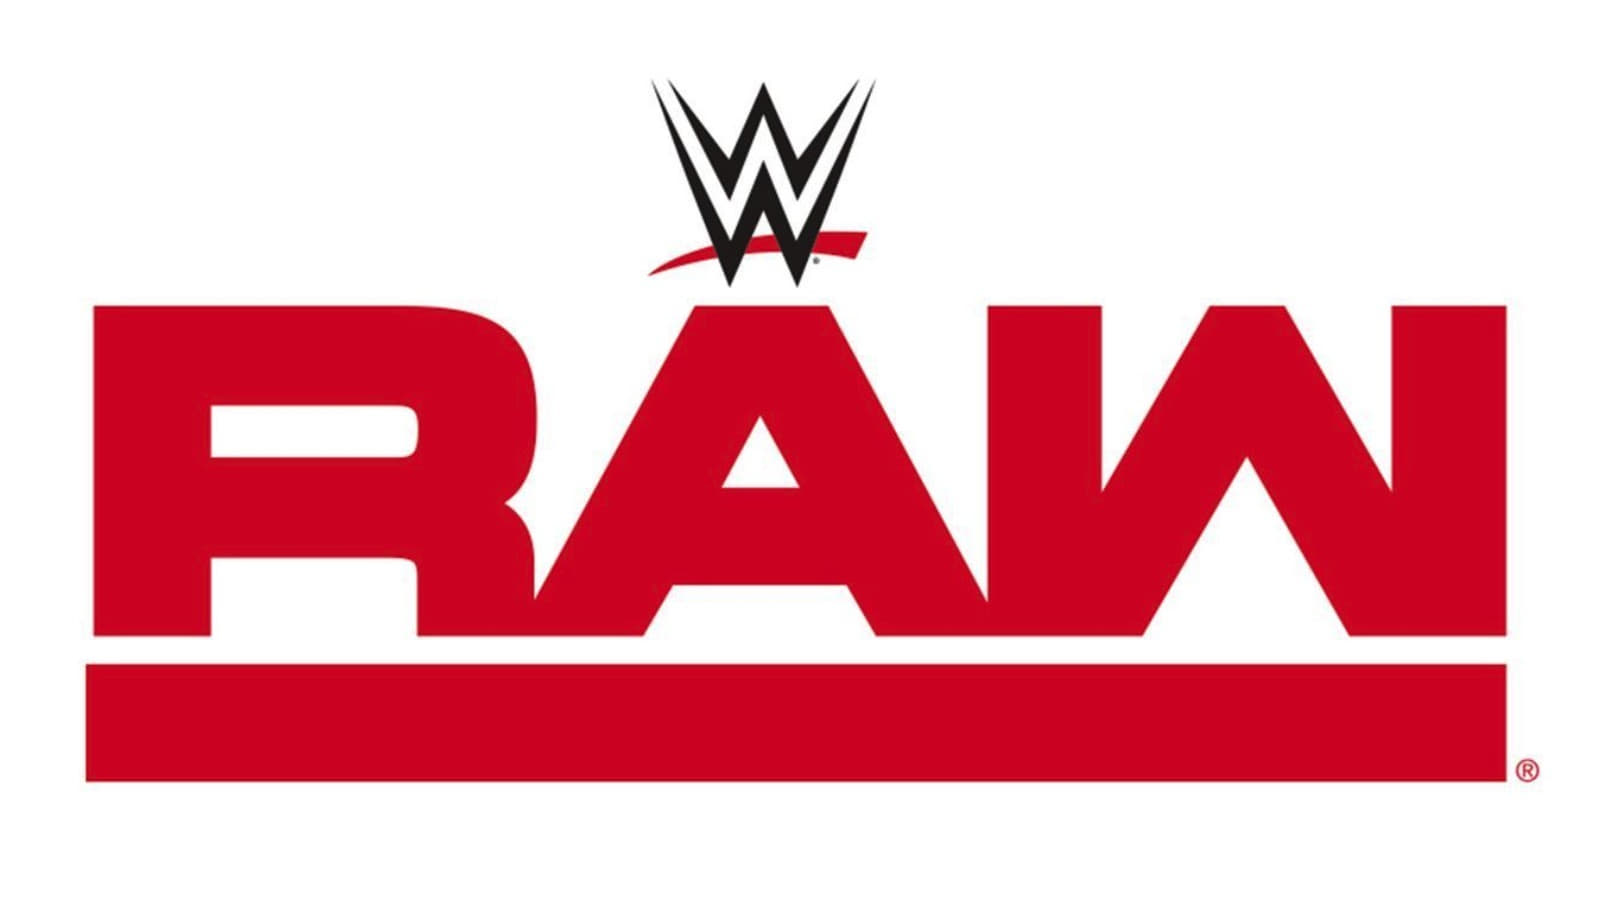 WWE Raw - Season 9 Episode 39 : RAW is WAR 435